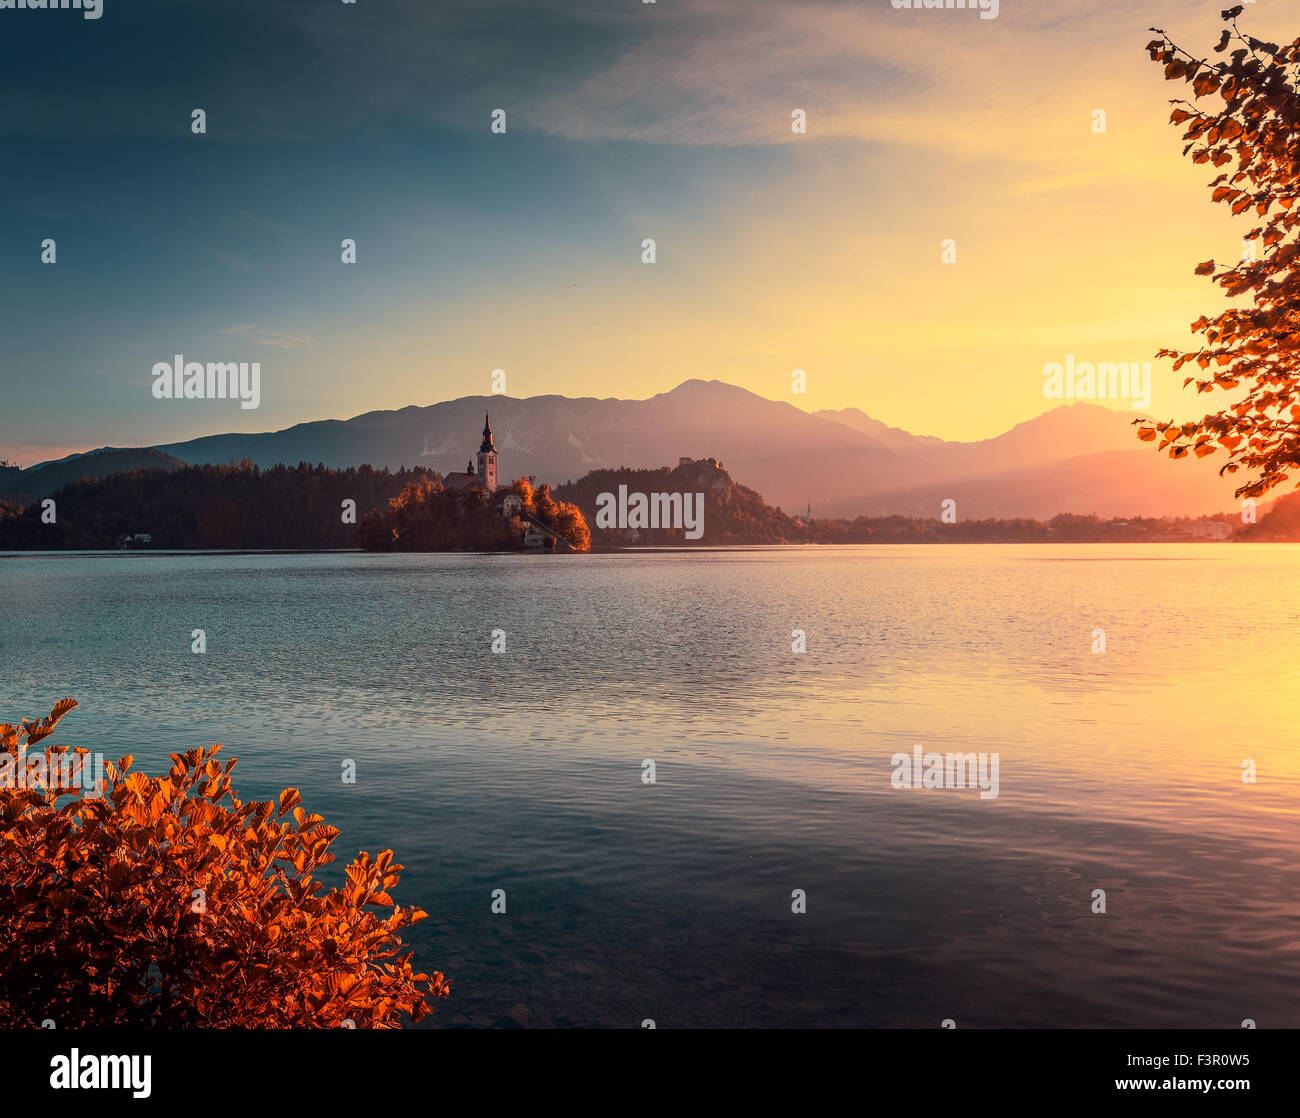 Famous Catholic Church on Little Island in Bled Lake, Slovenia at Autumn Sunrise with Mountains in BackgroundStock Photo